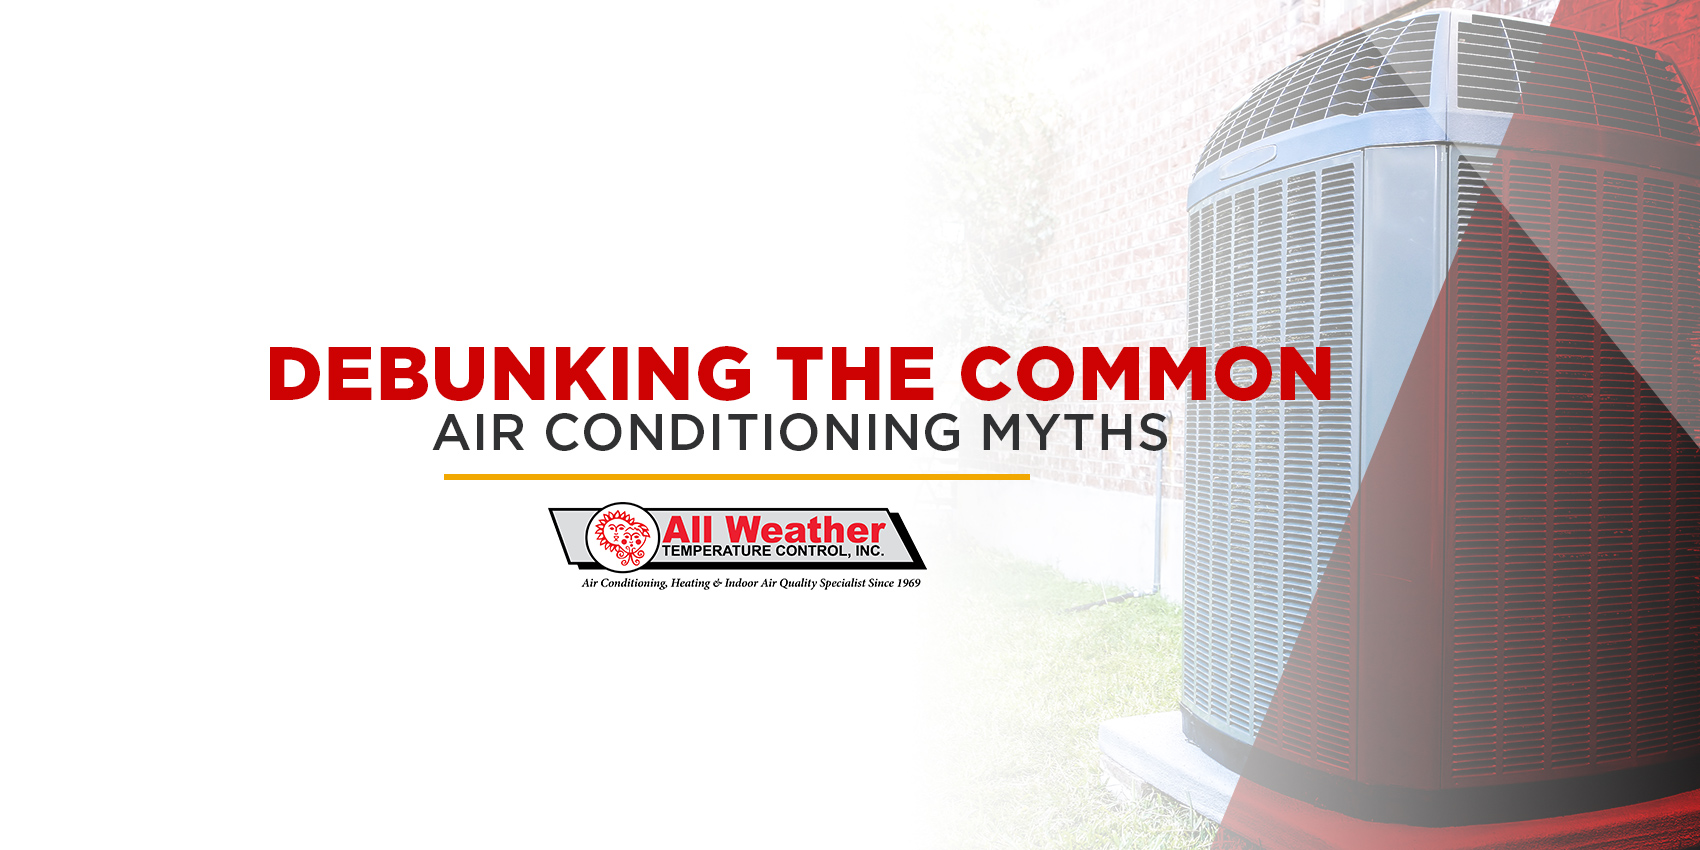 Debunking the Common Air Conditioning Myths